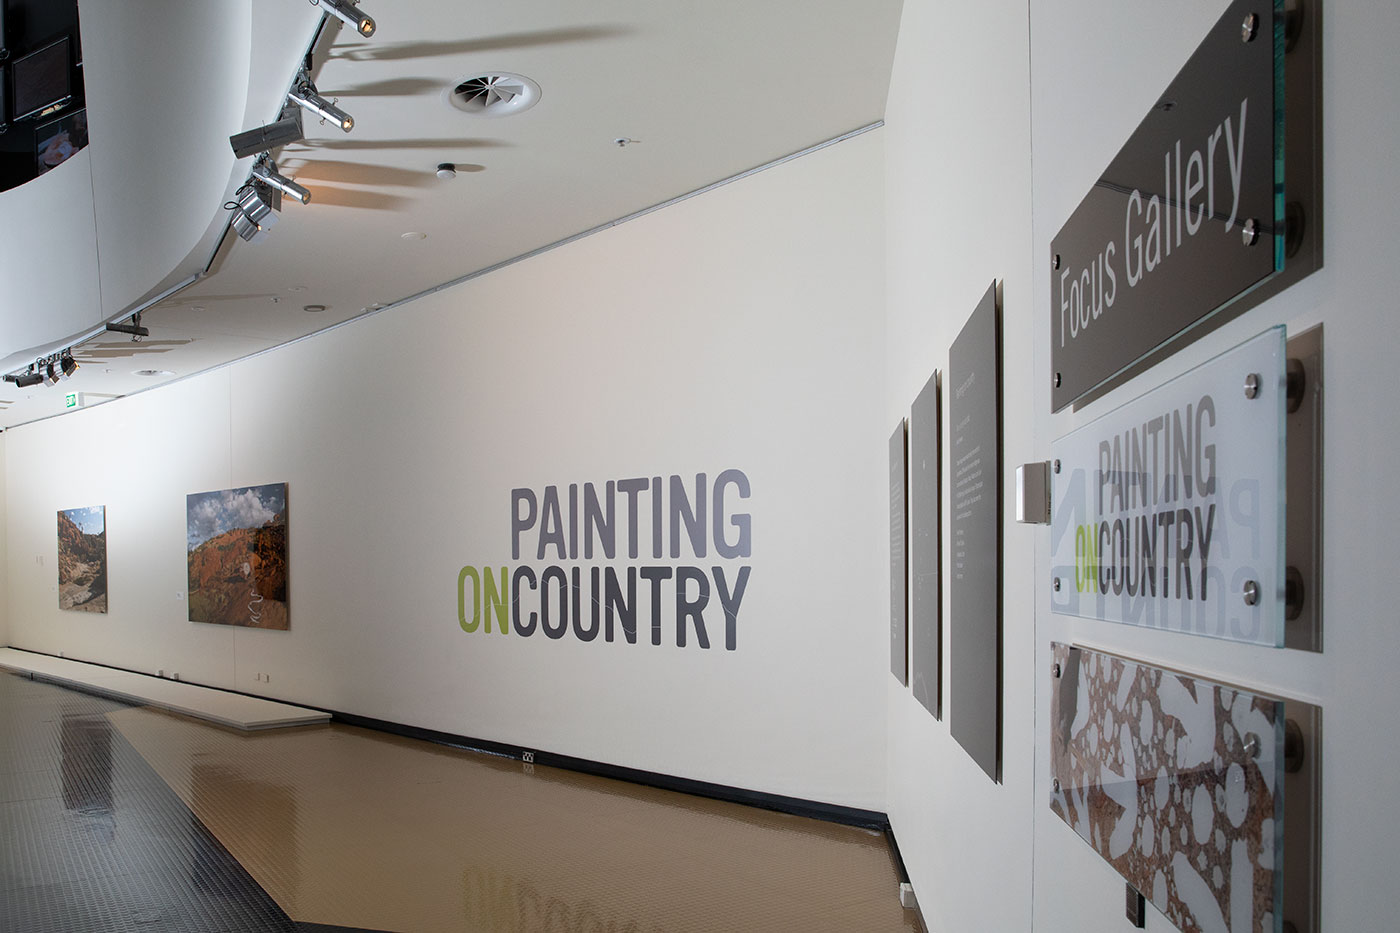 Photographs on display in the Painting on Country exhibition. - click to view larger image